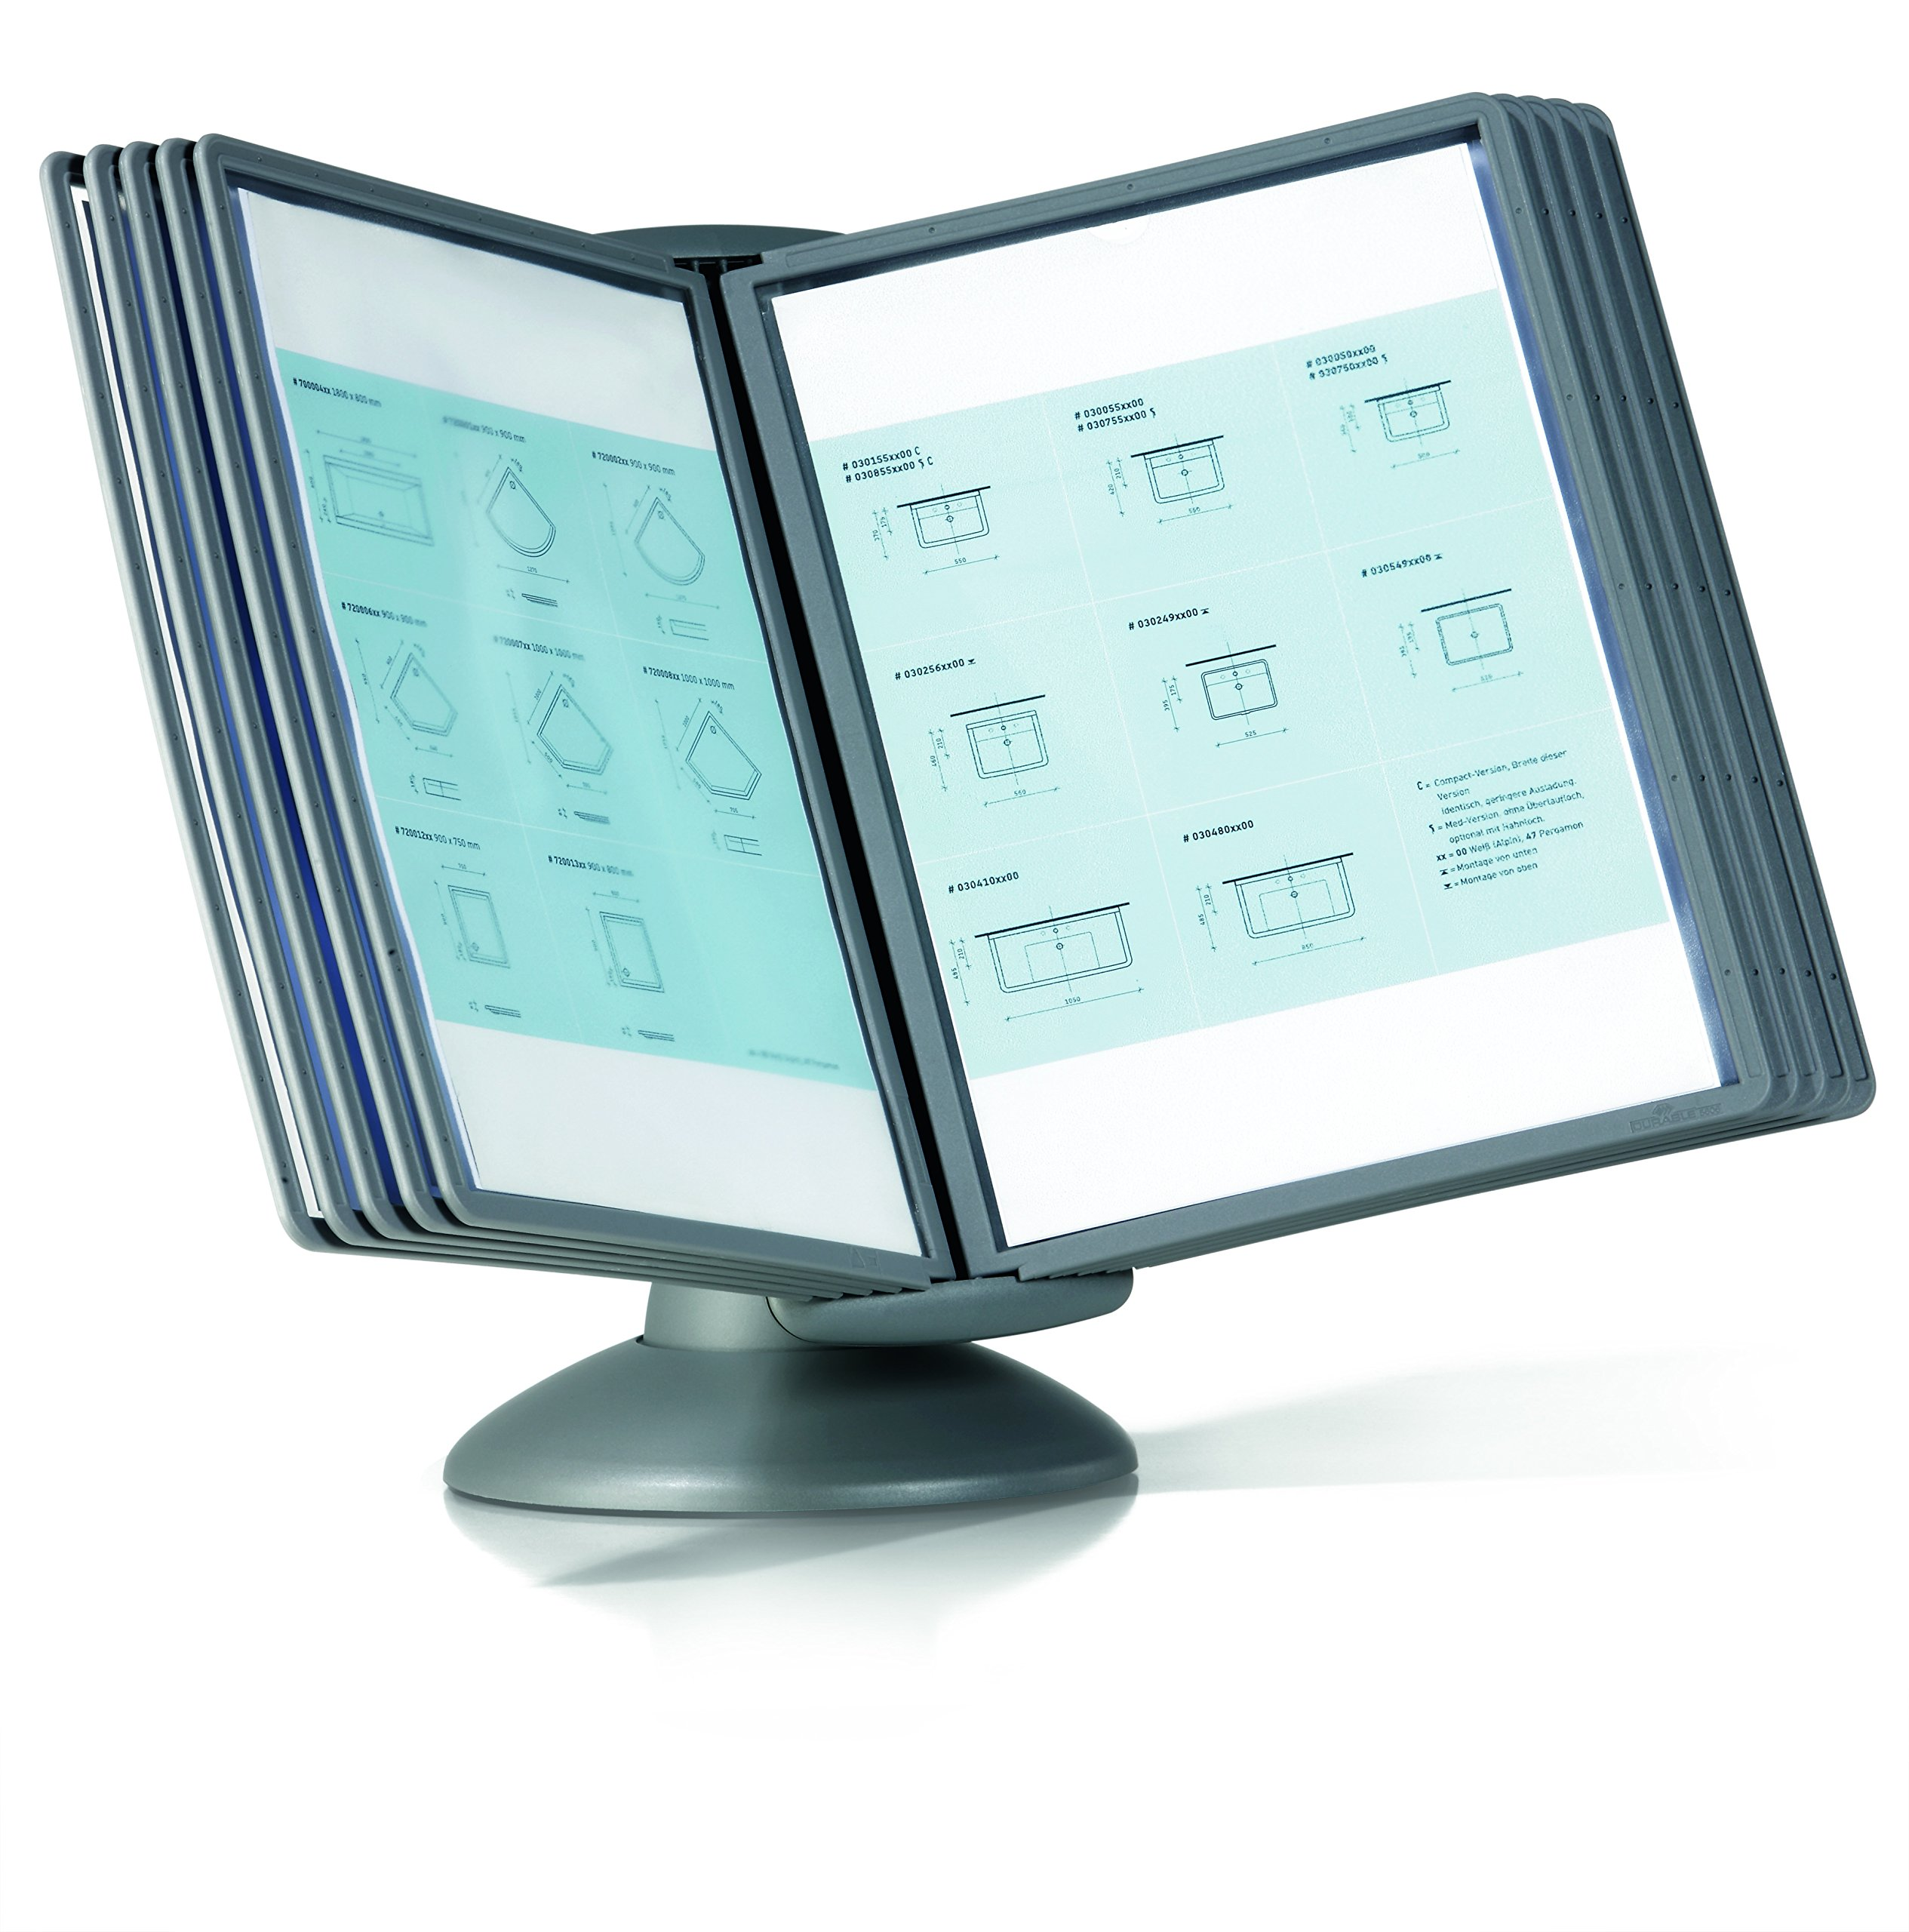 DURABLE Motion Reference System, 10 Double-Sided Panels, Letter-Size, Graphite, SHERPA Design (553937) by Durable